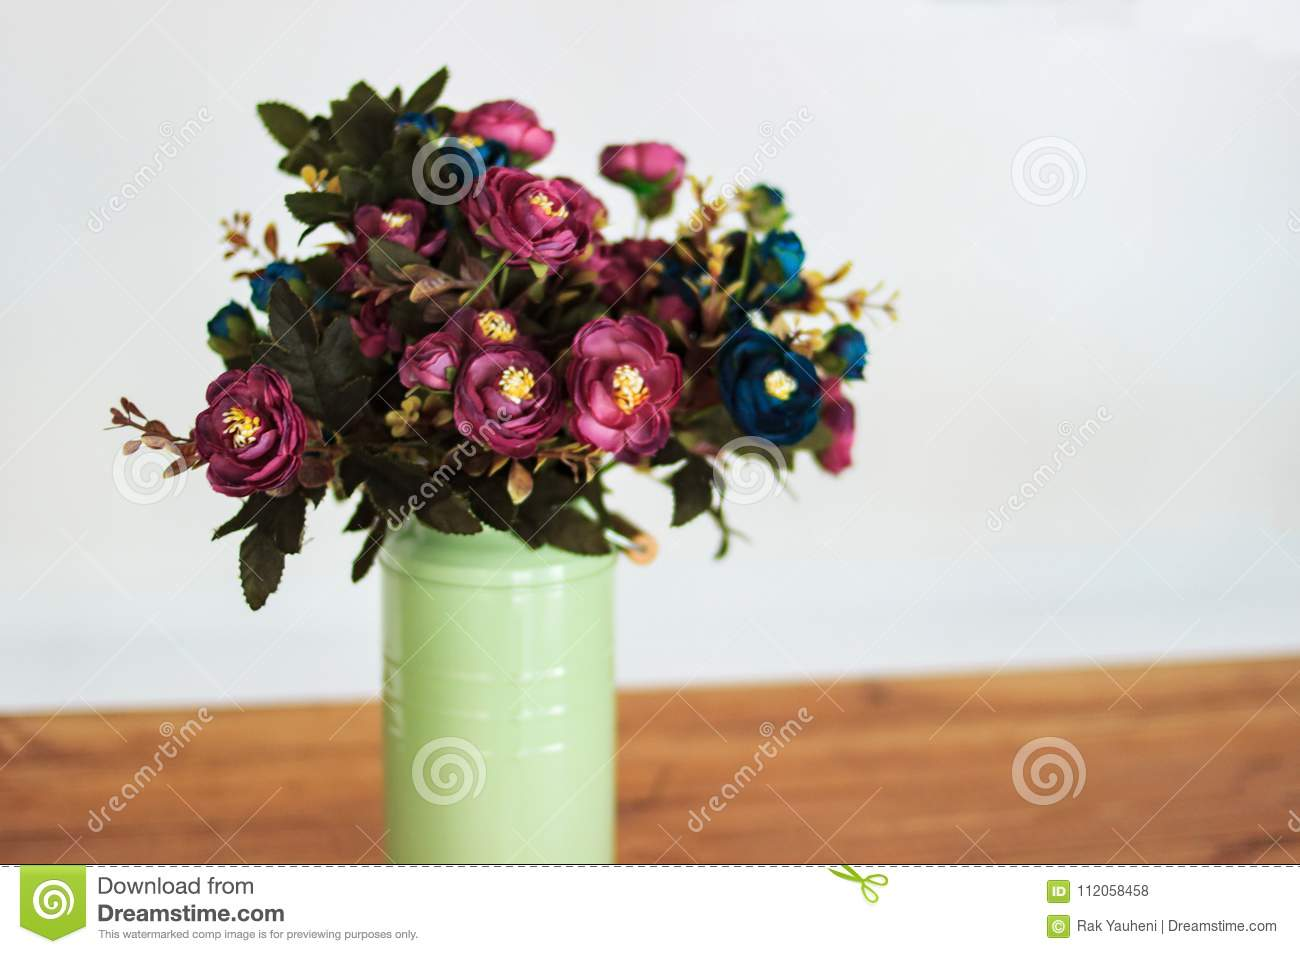 Bouquet of dried flowers in vase on table and light background a bouquet of dried flowers in vase on table and light background a bouquet of dried flowers in a vase dry flowers izmirmasajfo Images